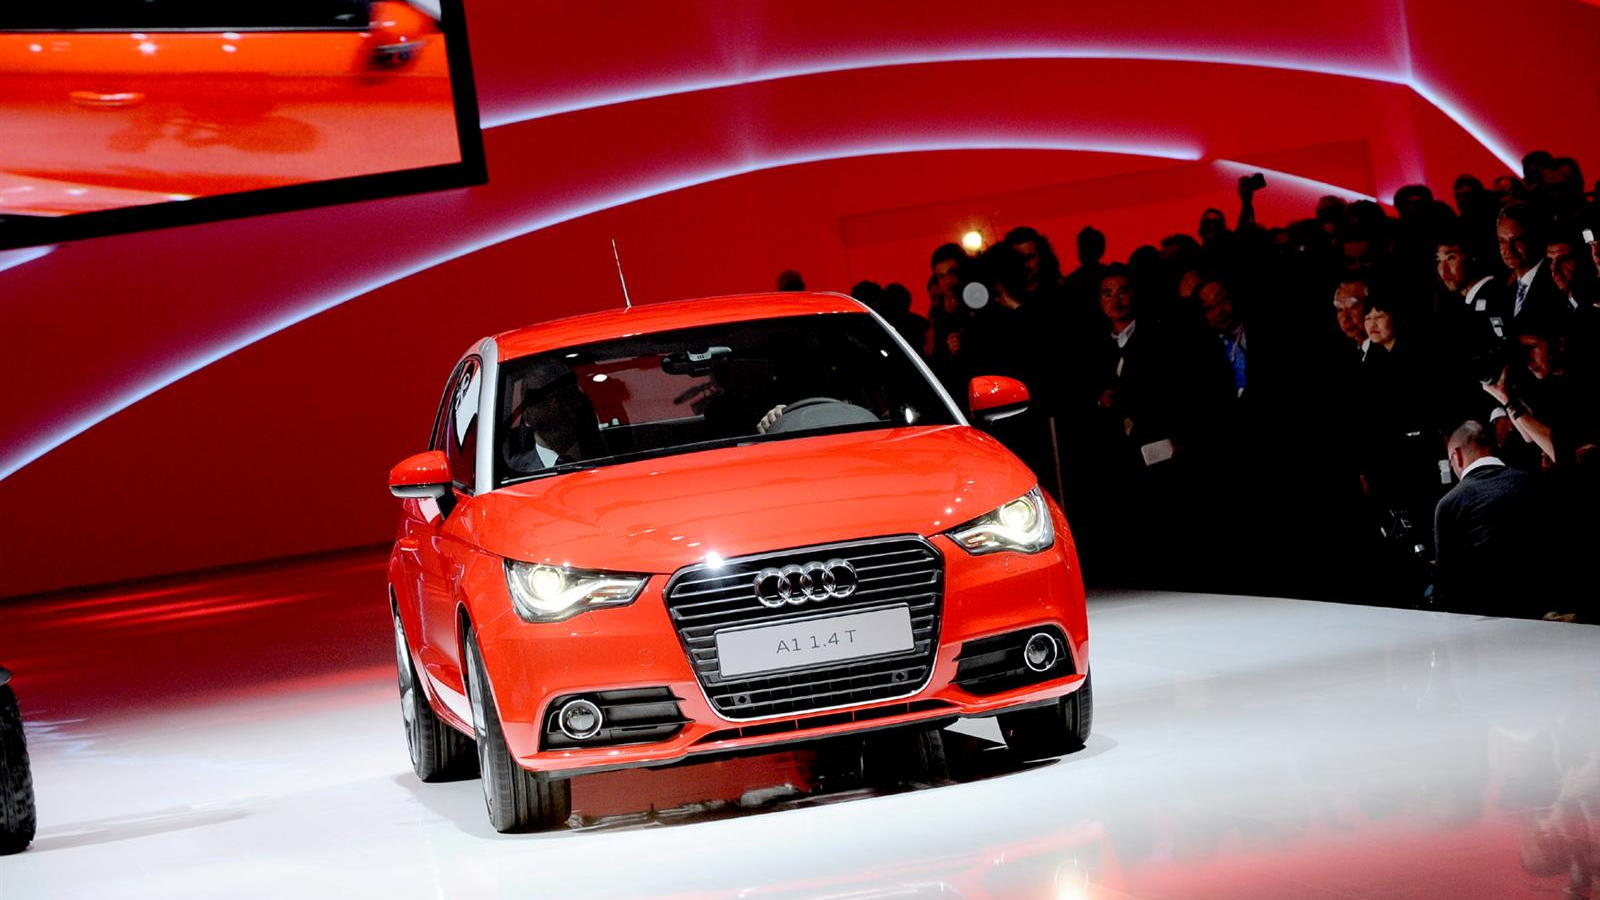 2011 Audi A1 live in Geneva. Photos © United Pictures, Int'l.